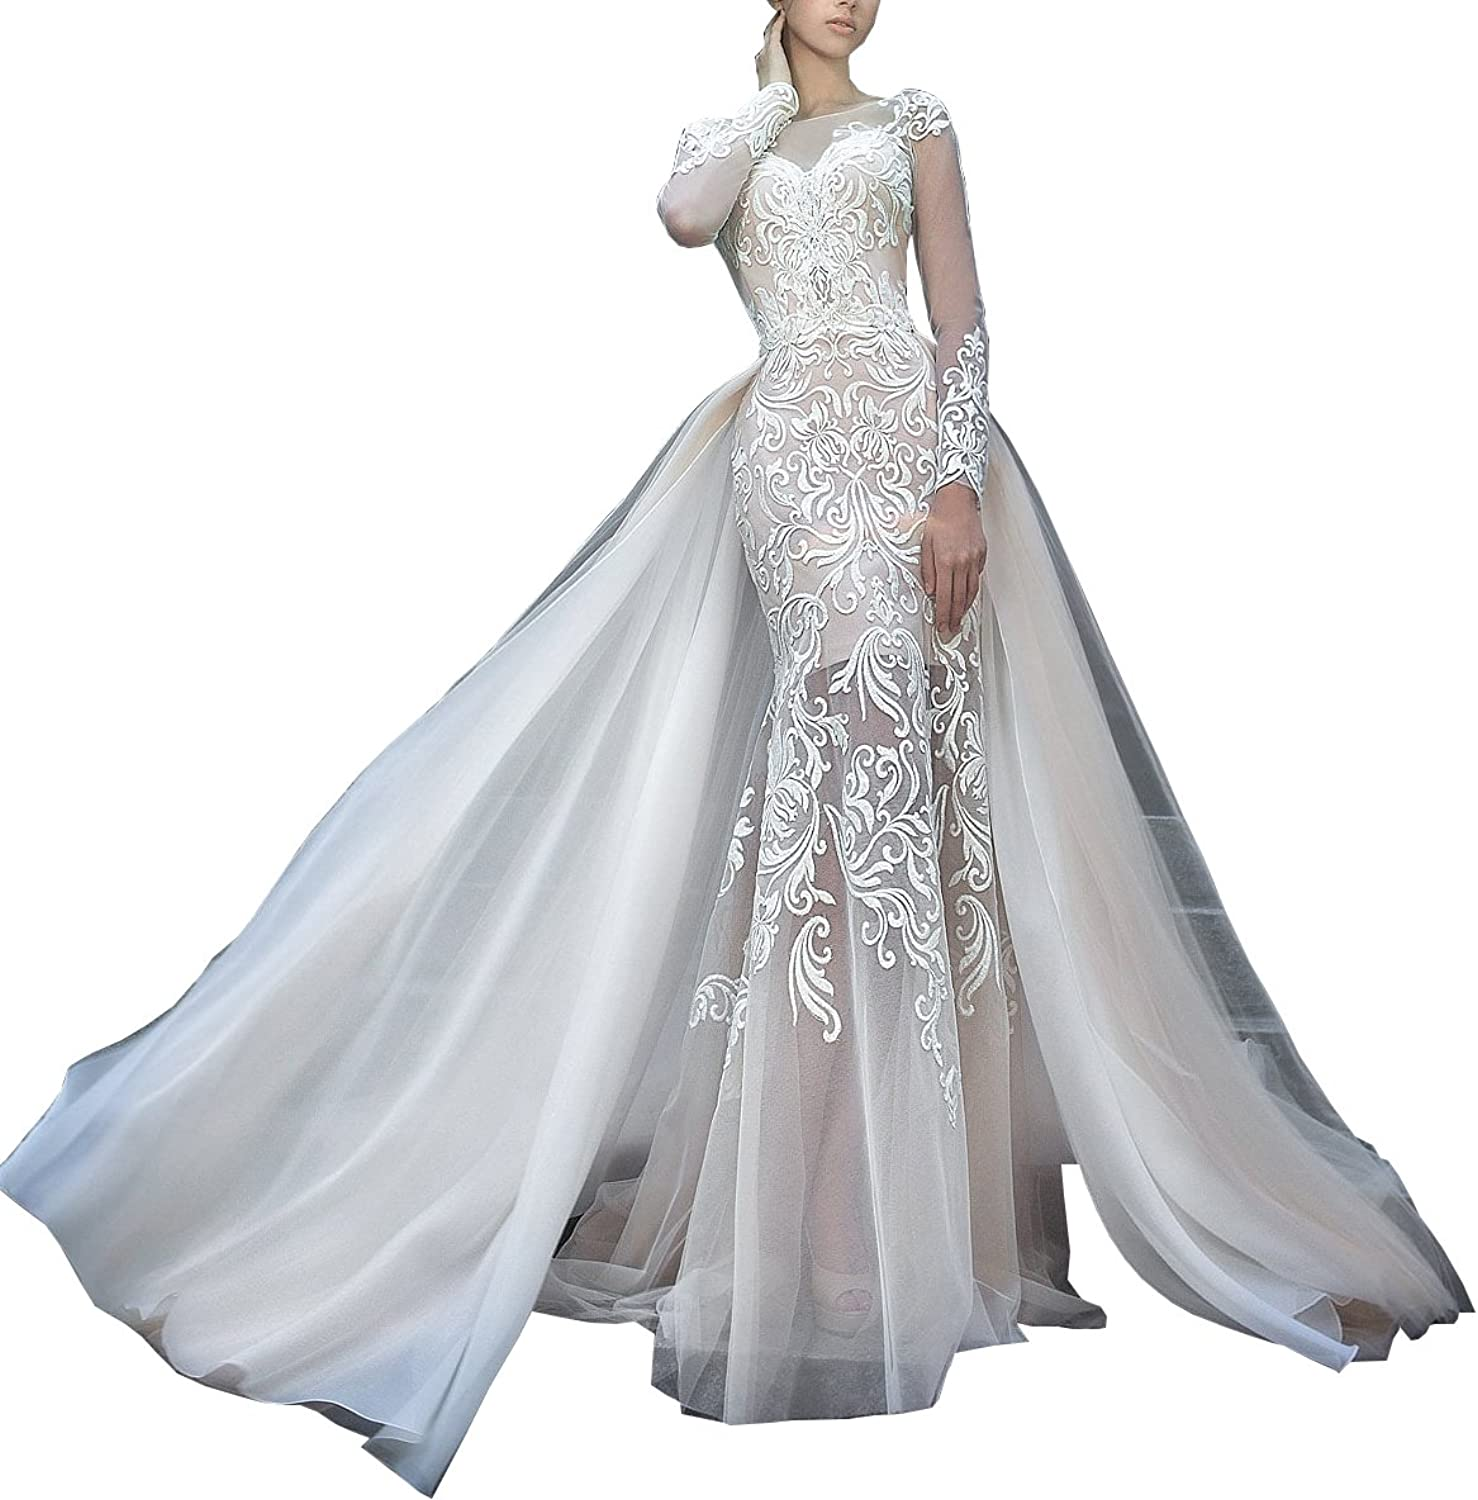 Changjie Women's Long Sleeves Lace Wedding Bridal Gown with Detachable OverSkirt